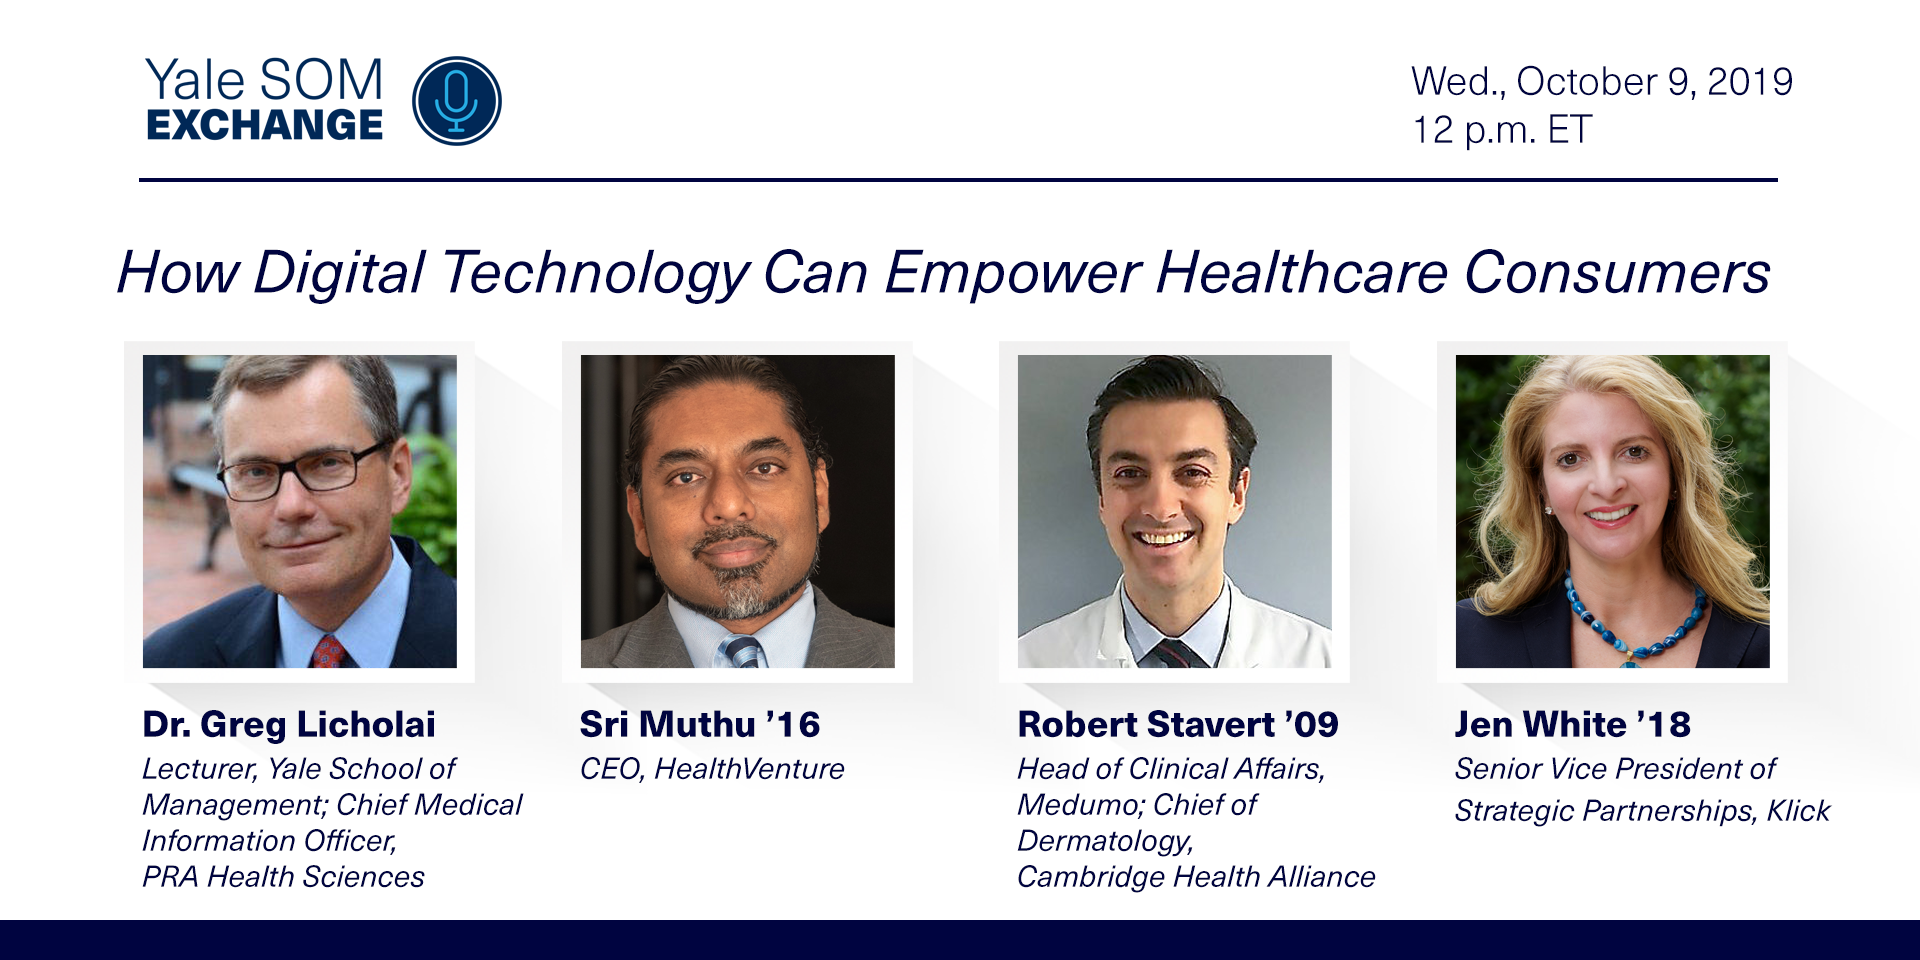 [WEBINAR] How Digital Technology Can Empower Healthcare Consumers